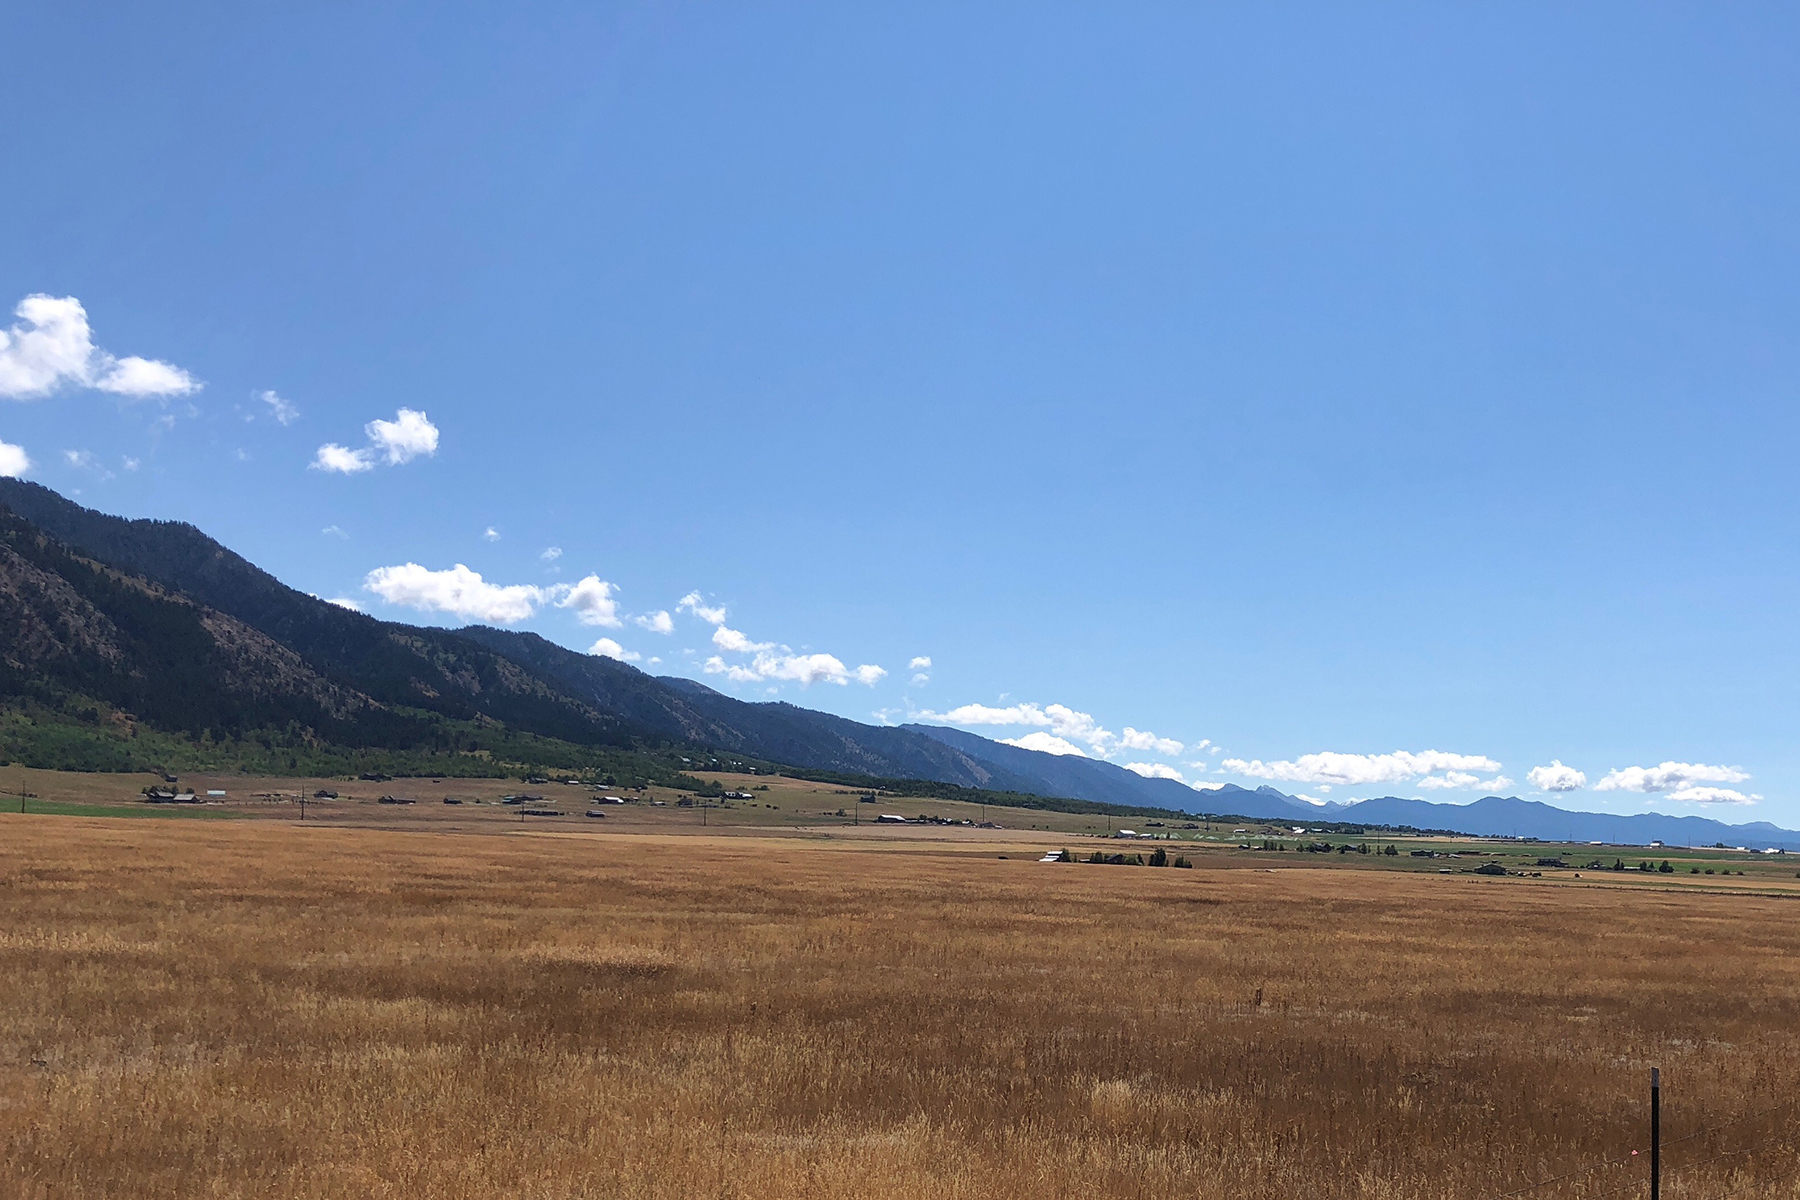 Land for Sale at Ideal Location and Acreage 80 Acres Off of Anchor Road Etna, Wyoming 83118 United States